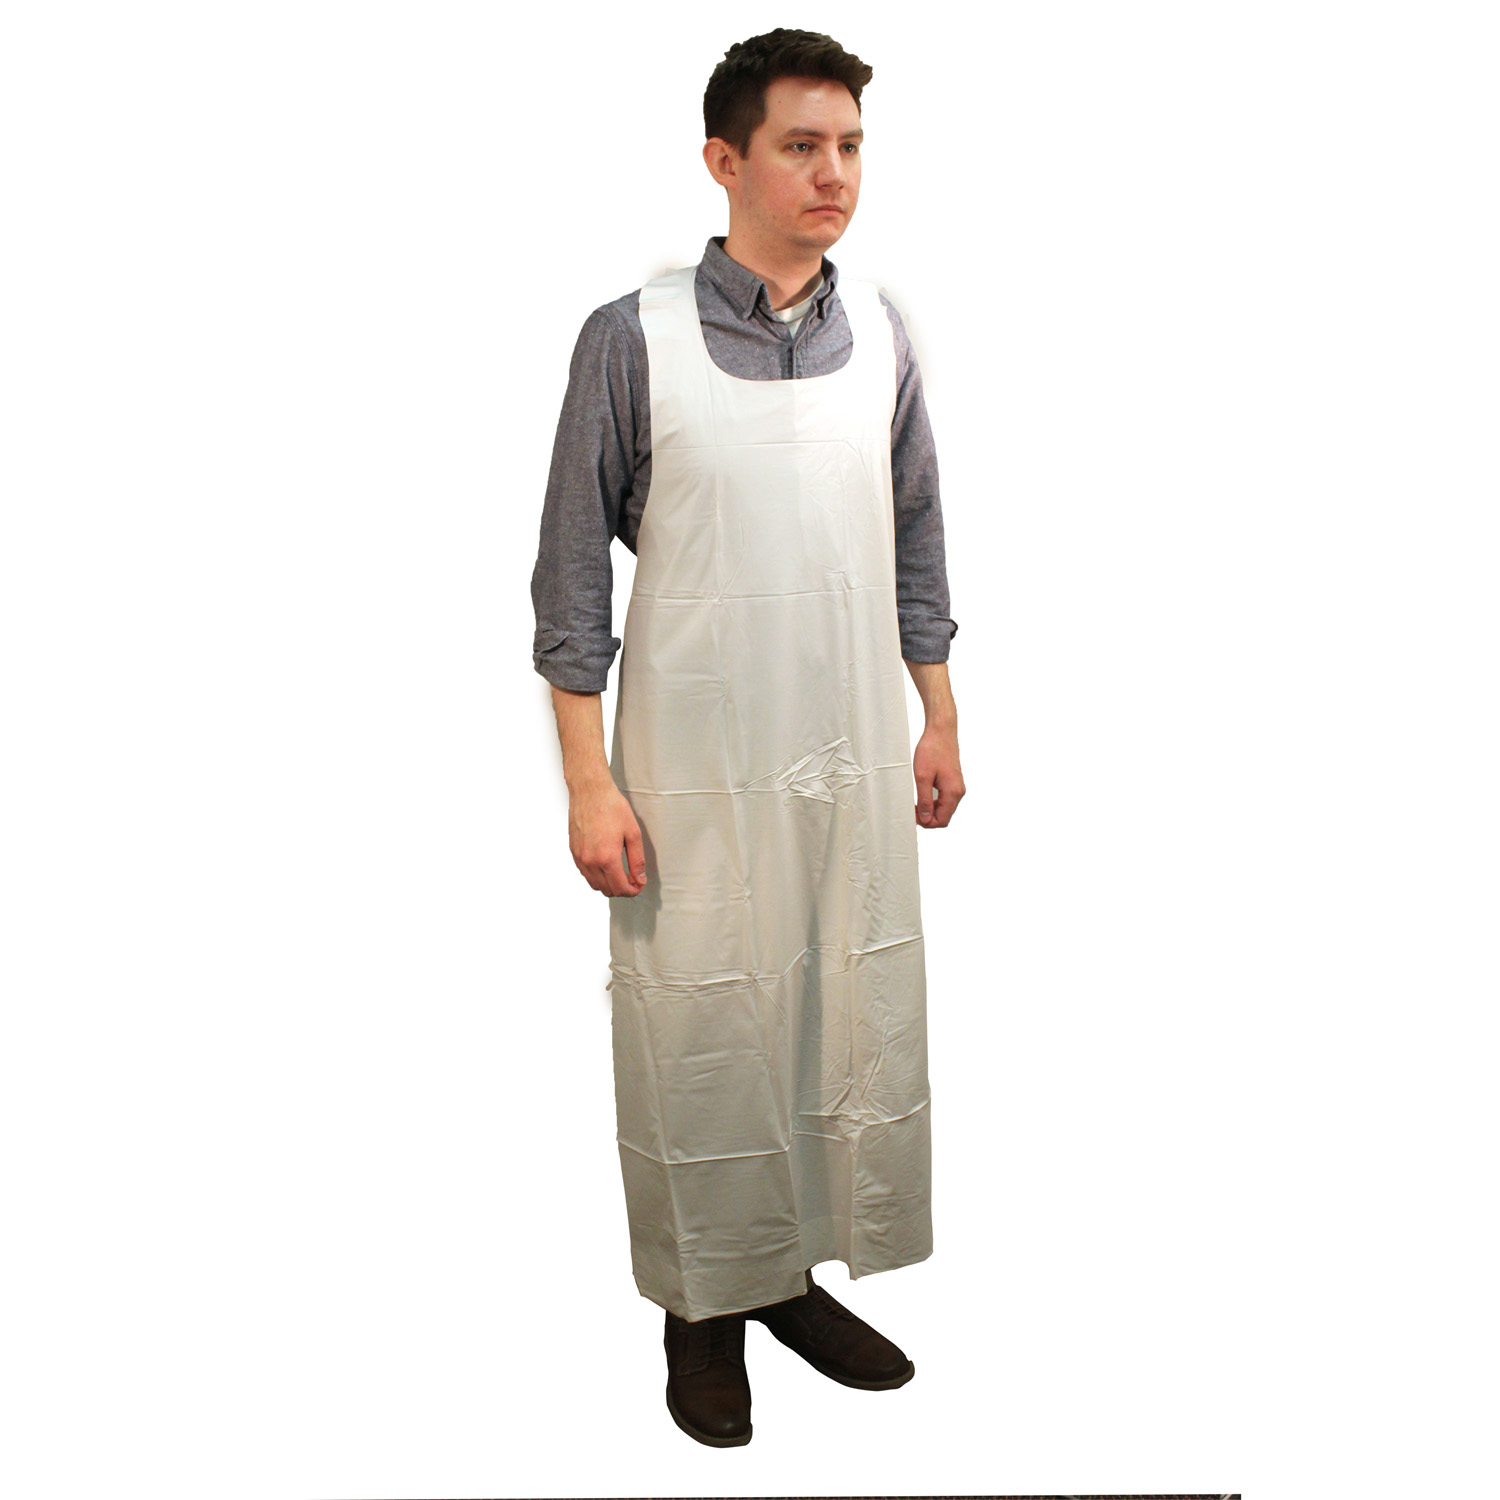 Impact Products 7362 disposable apron